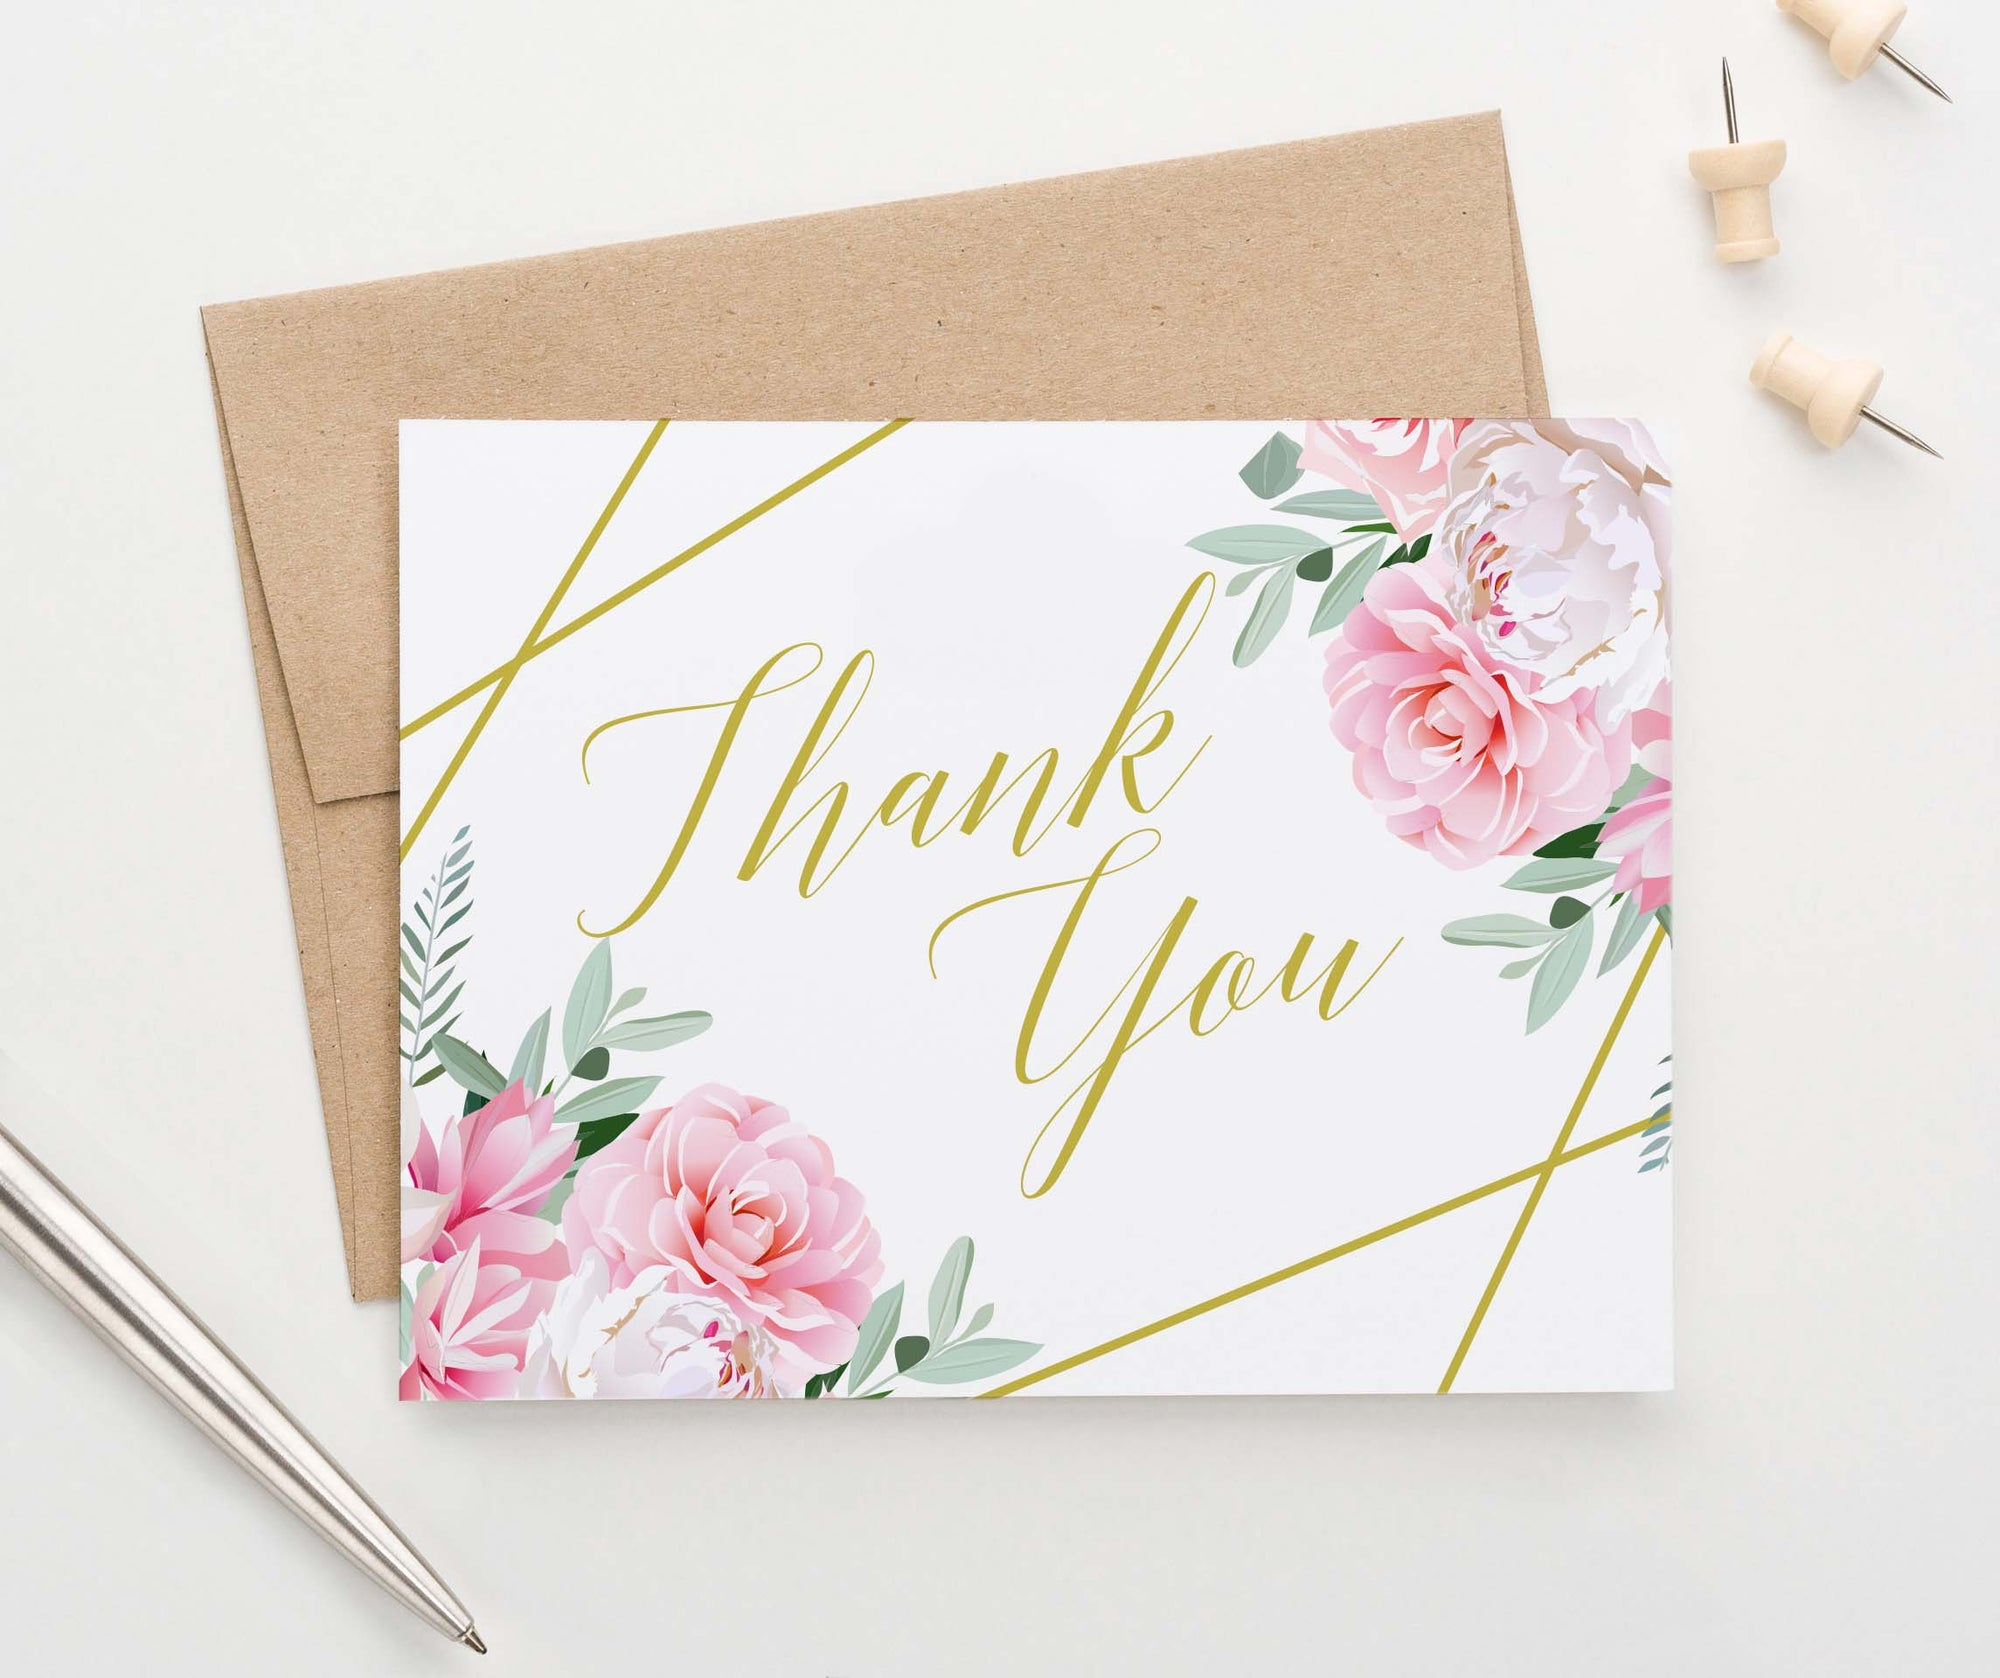 TY016 pink floral thank you notes for wedding gold geometric baby shower